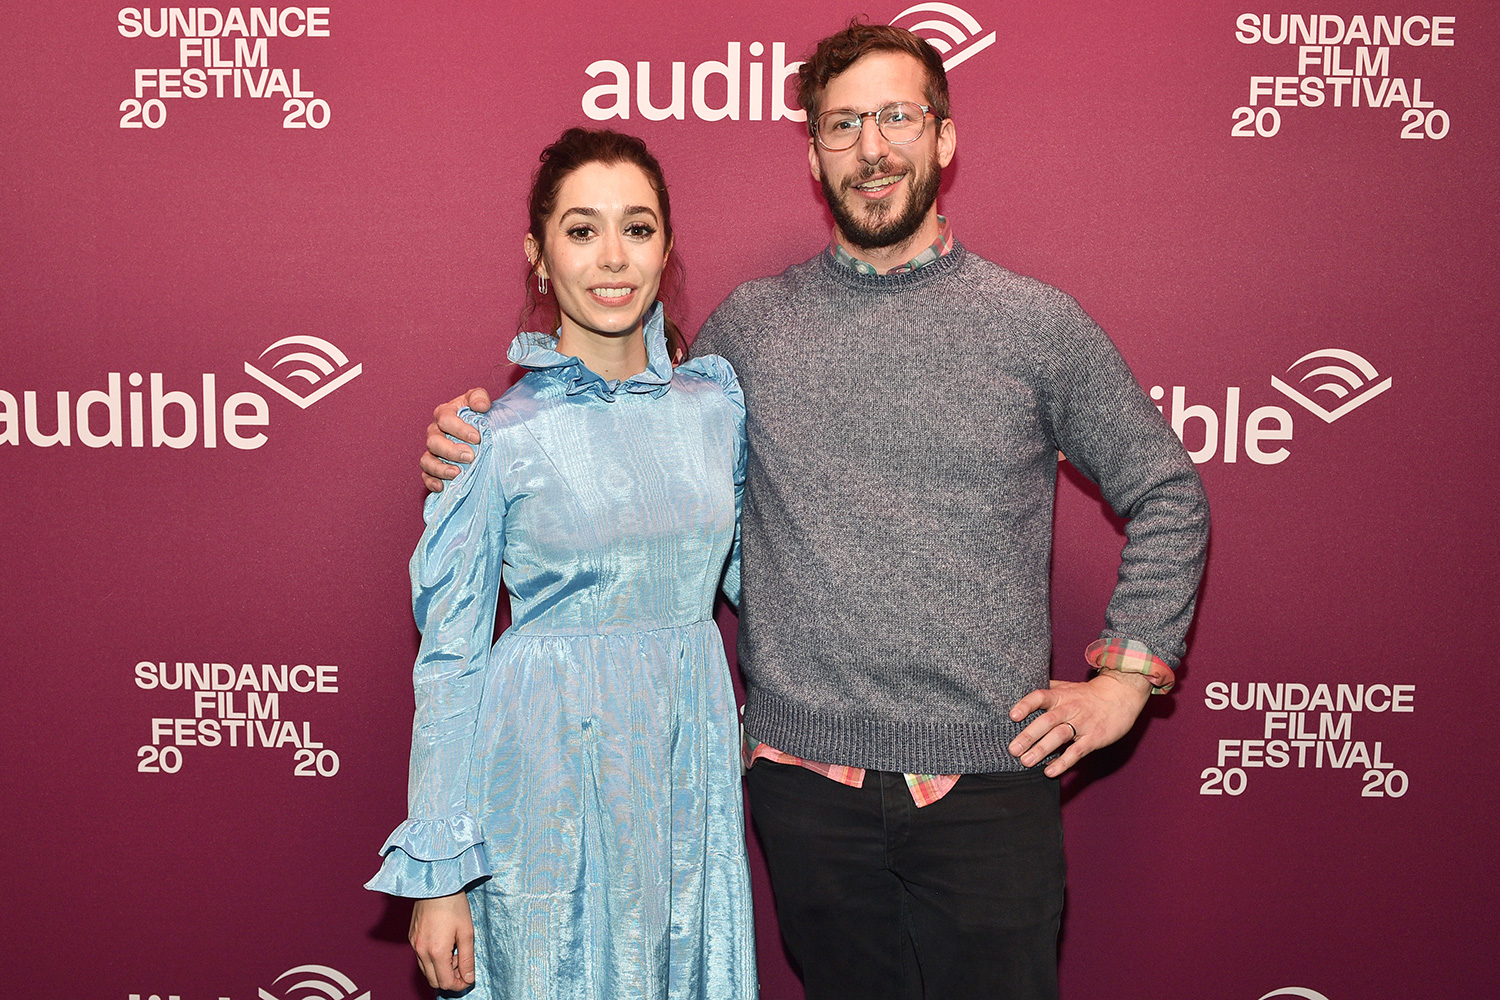 """Cristin Milioti (L) and Andy Samberg attend the """"Palm Springs"""" premiere party at Audible Speakeasy during the 2020 Sundance Film Festival on January 26, 2020 in Park City, Utah"""